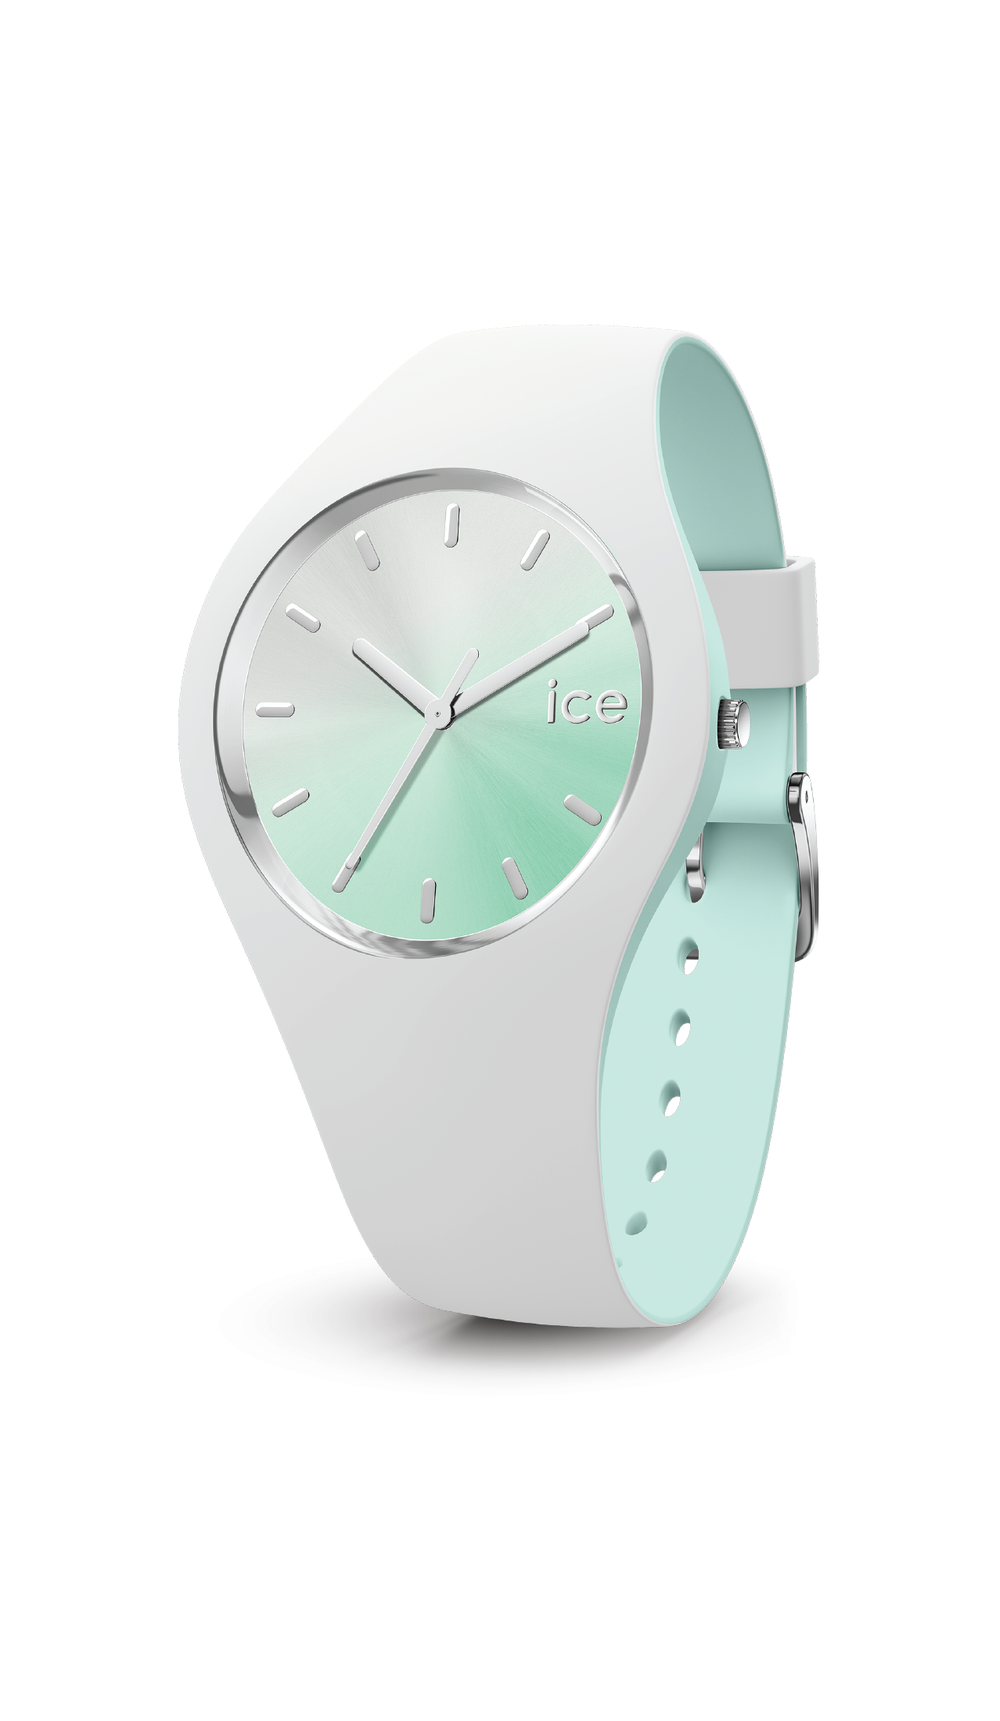 ICE duo chic - White aqua - Medium